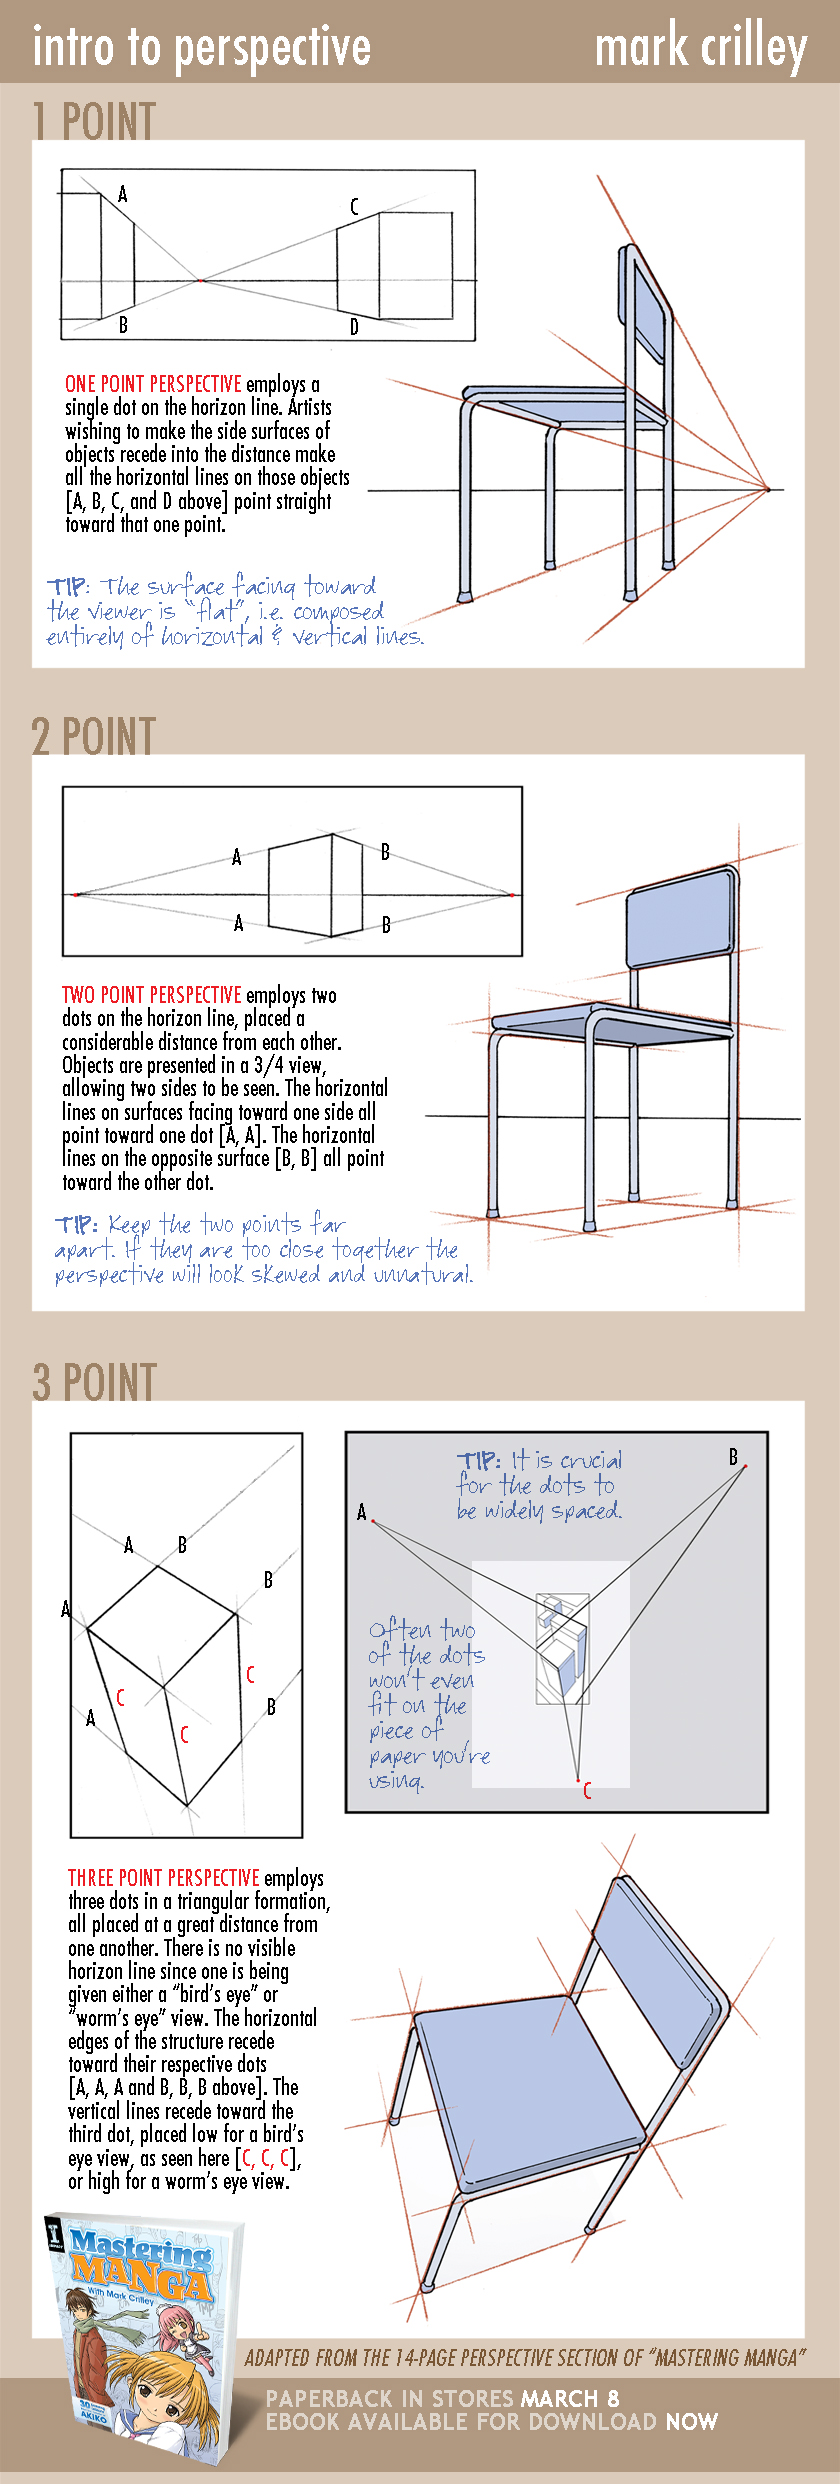 Intro to Perspective: 1, 2, and 3 Point by markcrilley